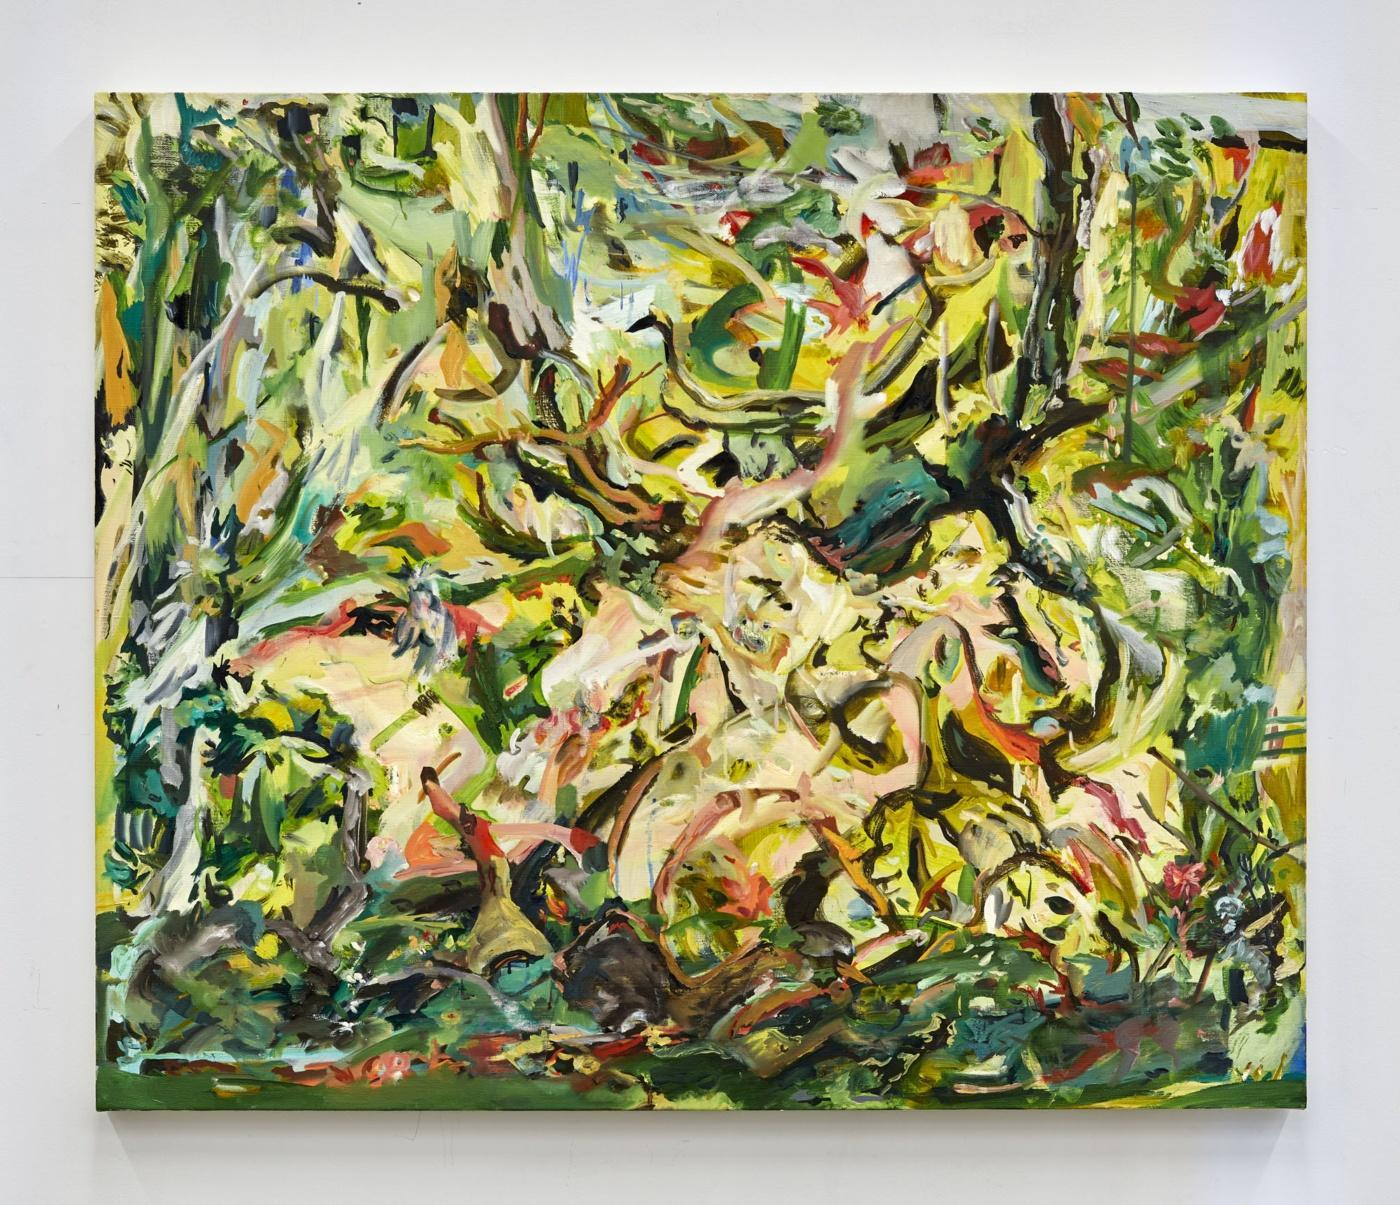 Cecily Brown, /Two Fools in Love/, 2020, oil on linen, 78.7 × 94 cm